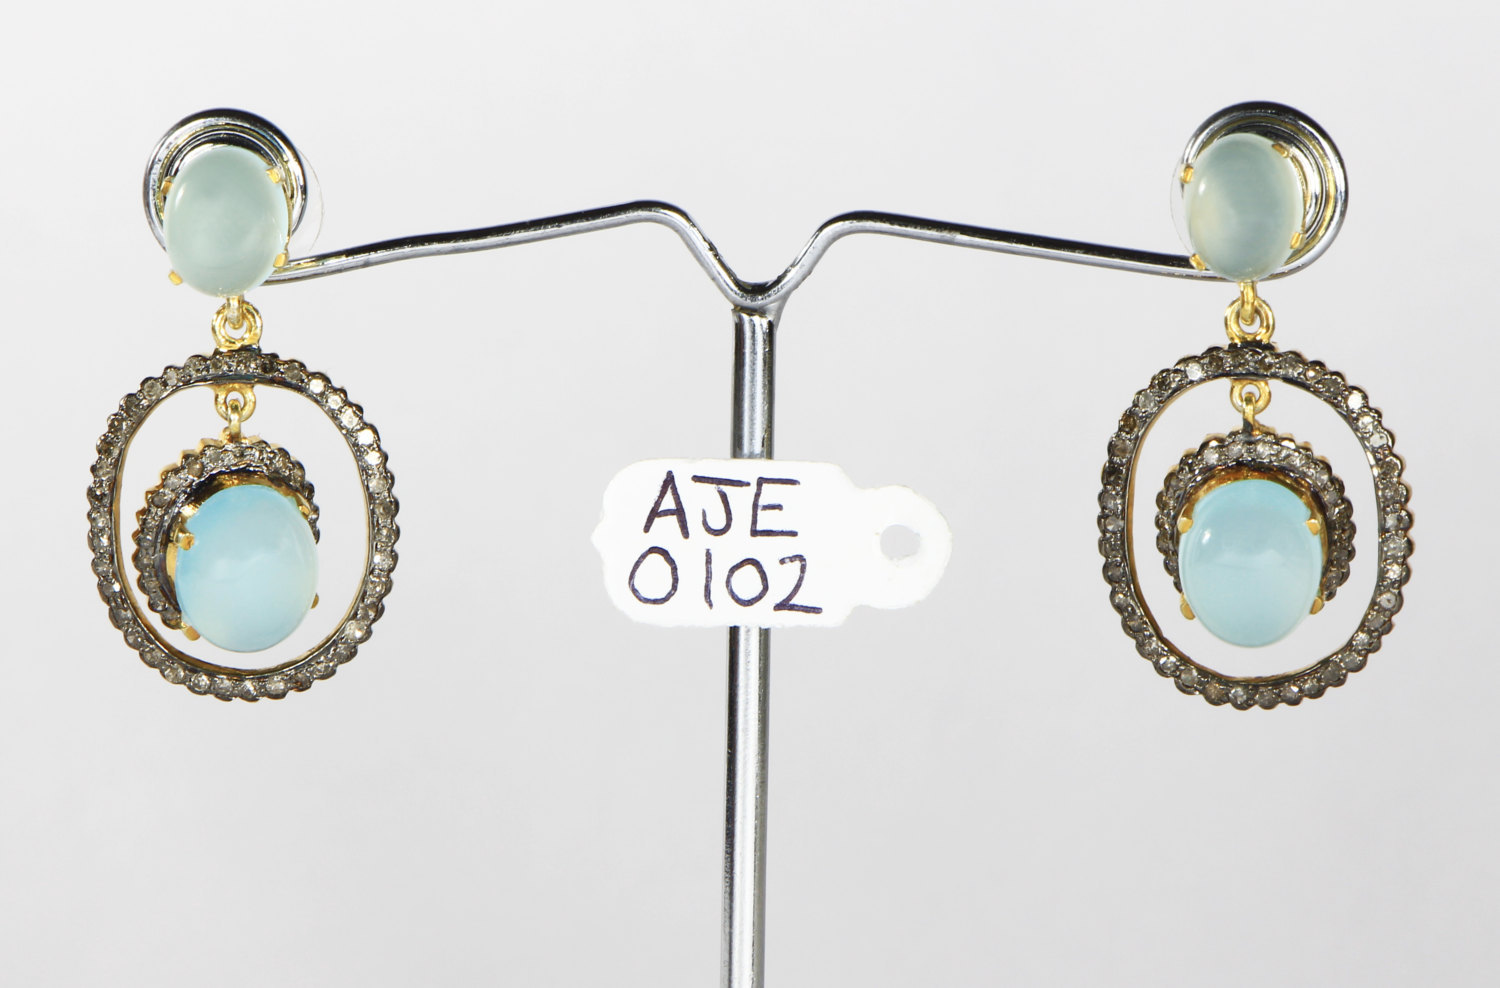 Dangling Oxidized Earrings .925 Sterling Silver with Aquamarine & Pave Diamonds